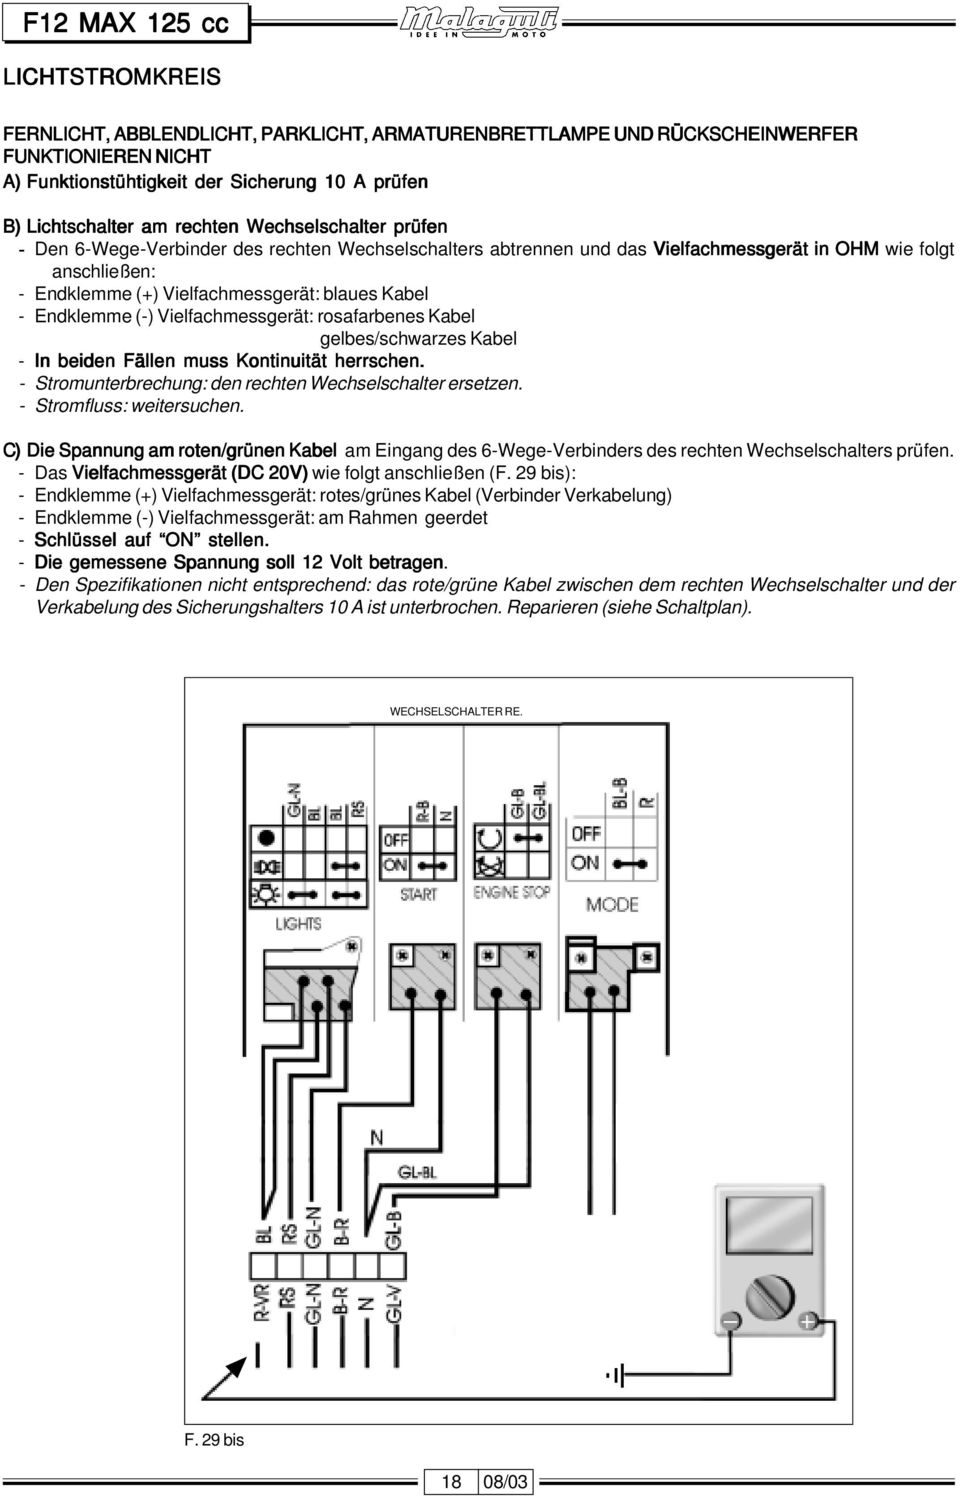 Language Index Elektrischen Anlage Electric System Depannage F12 Magneto Wiring Schematic Endklemme Vielfachmessgert Rosafarbenes Kabel Gelbes Schwarzes In Beiden Fllen